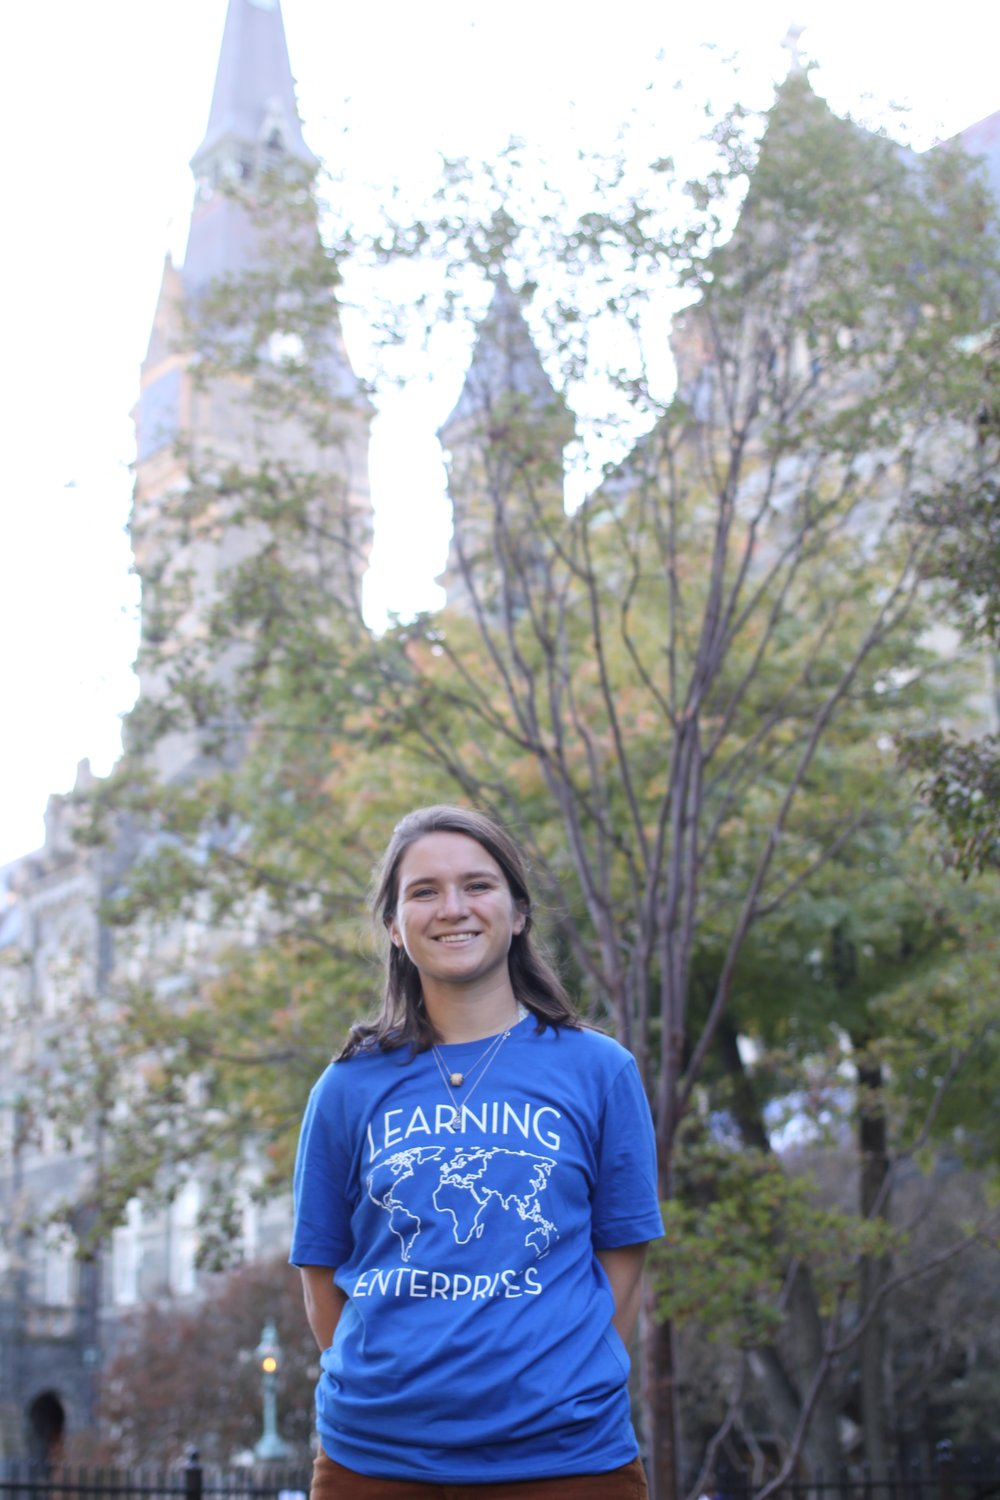 Maure Buckley - Poland Maure is a junior at George Washington University studying International Affairs with a concentration in International Environmental Studies. Her family has lived in Virginia since she was 15, but growing up she lived all over the US and spent some time in Europe as well. She volunteered in Poland this past summer and had an amazing time! Maure can't wait to work more with LE and find some more great volunteers for summer 2017! Reach out to Maure: poland@learningenterprises.org